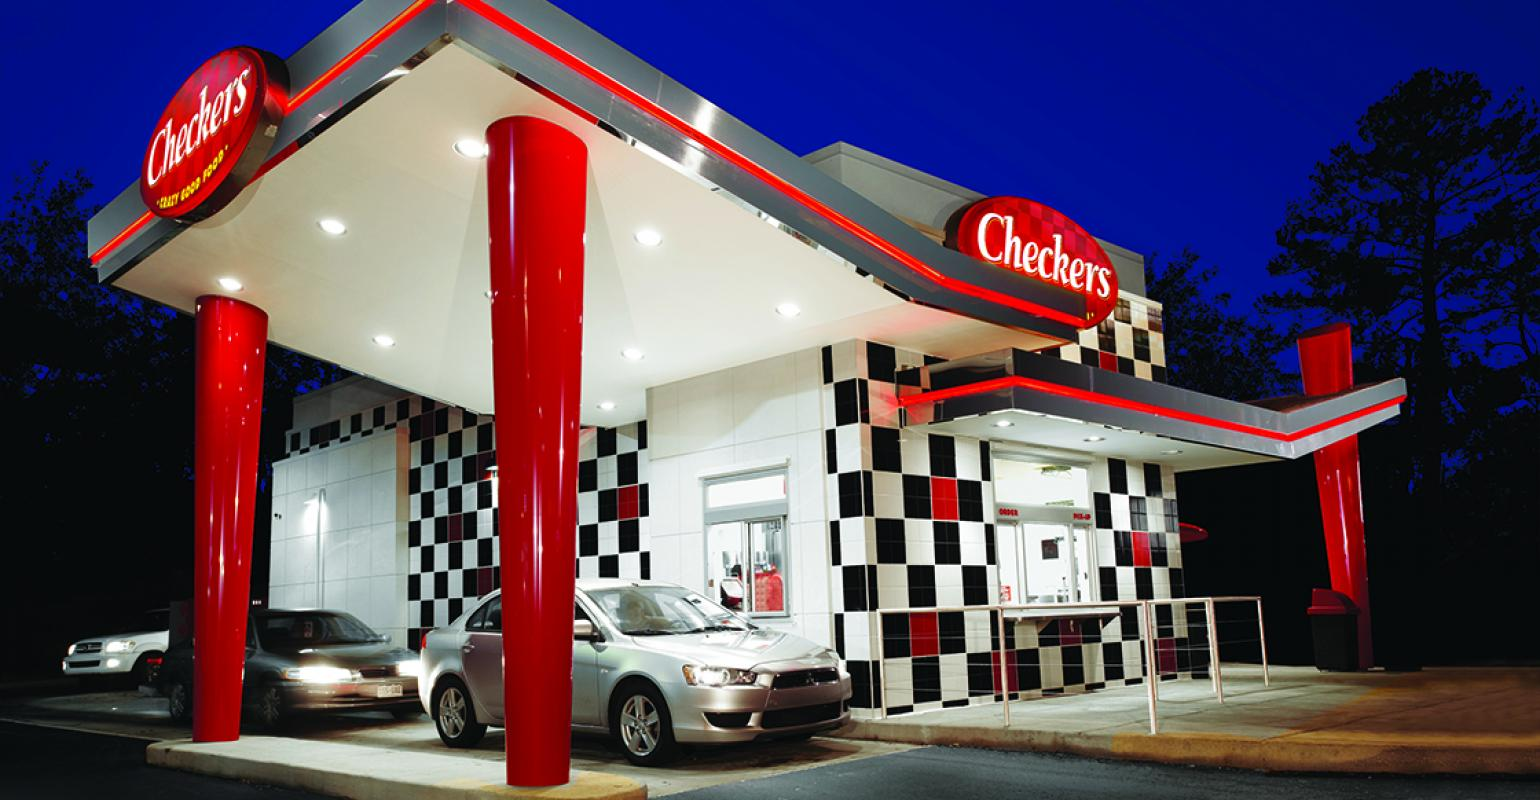 Checkers Drive-In Restaurants Inc